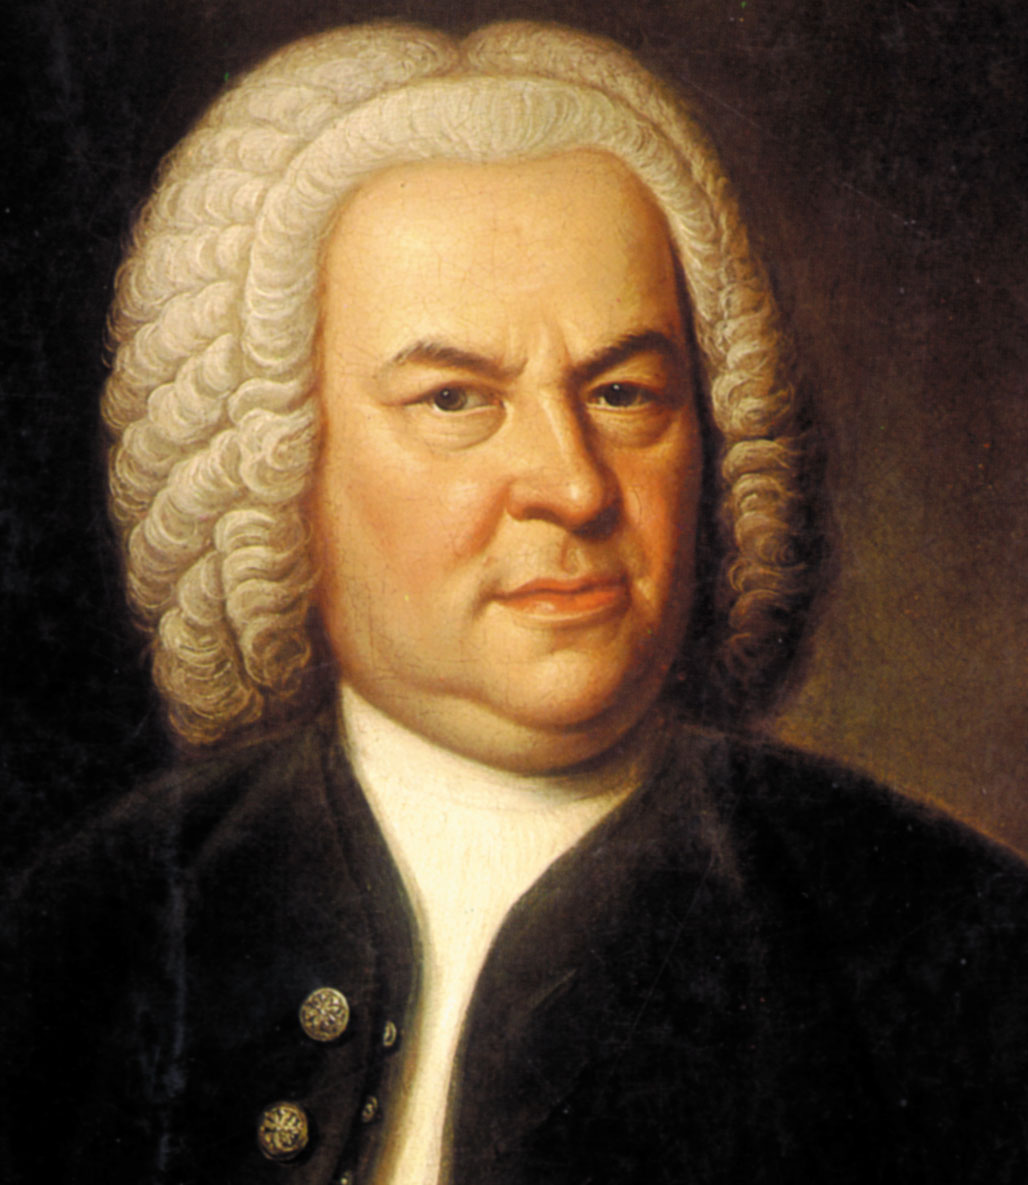 Portrait of J. S. Bach, circa 1745 (Image in public domain)